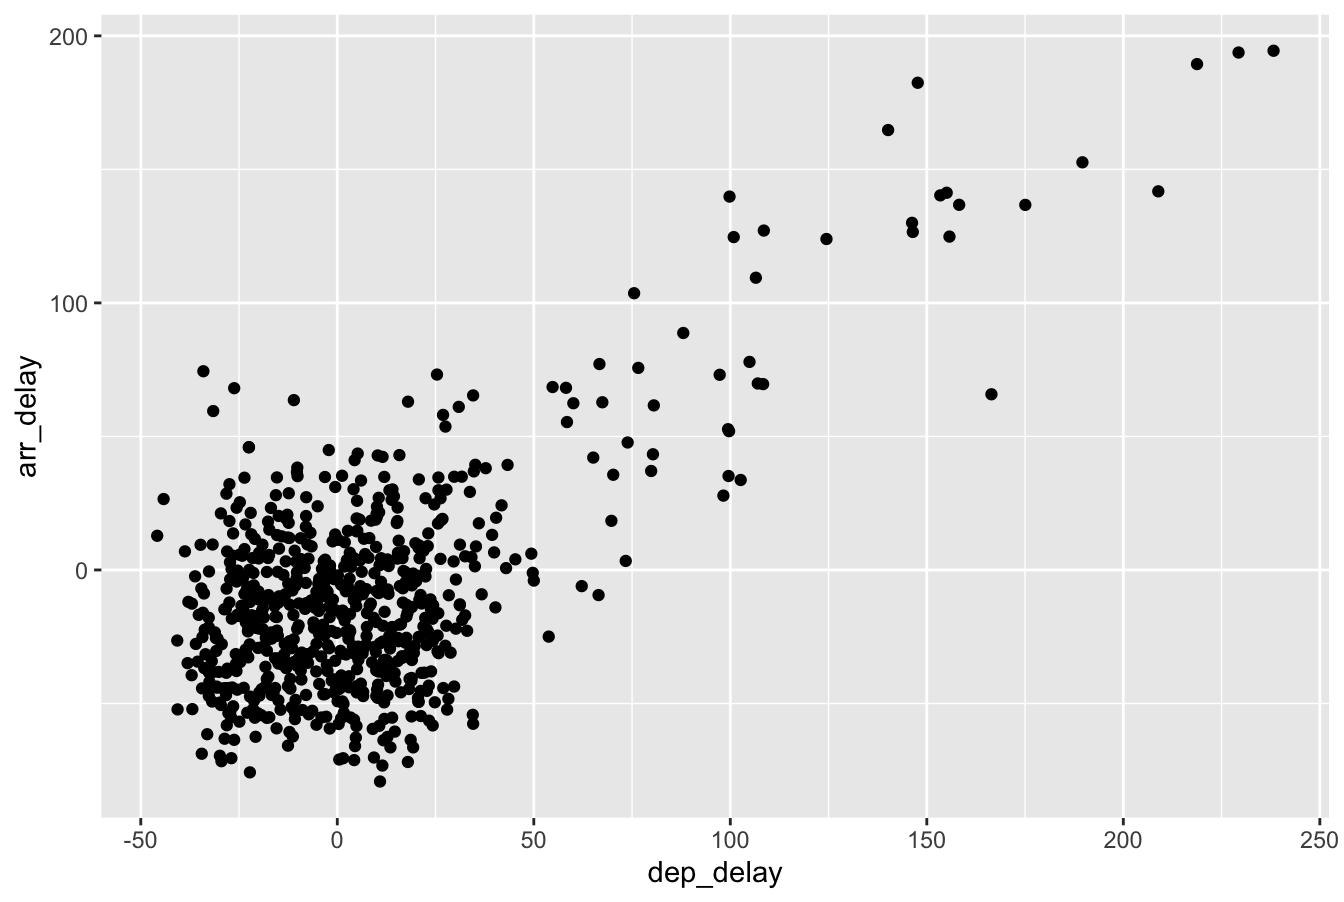 Arrival versus departure delays jittered scatterplot.